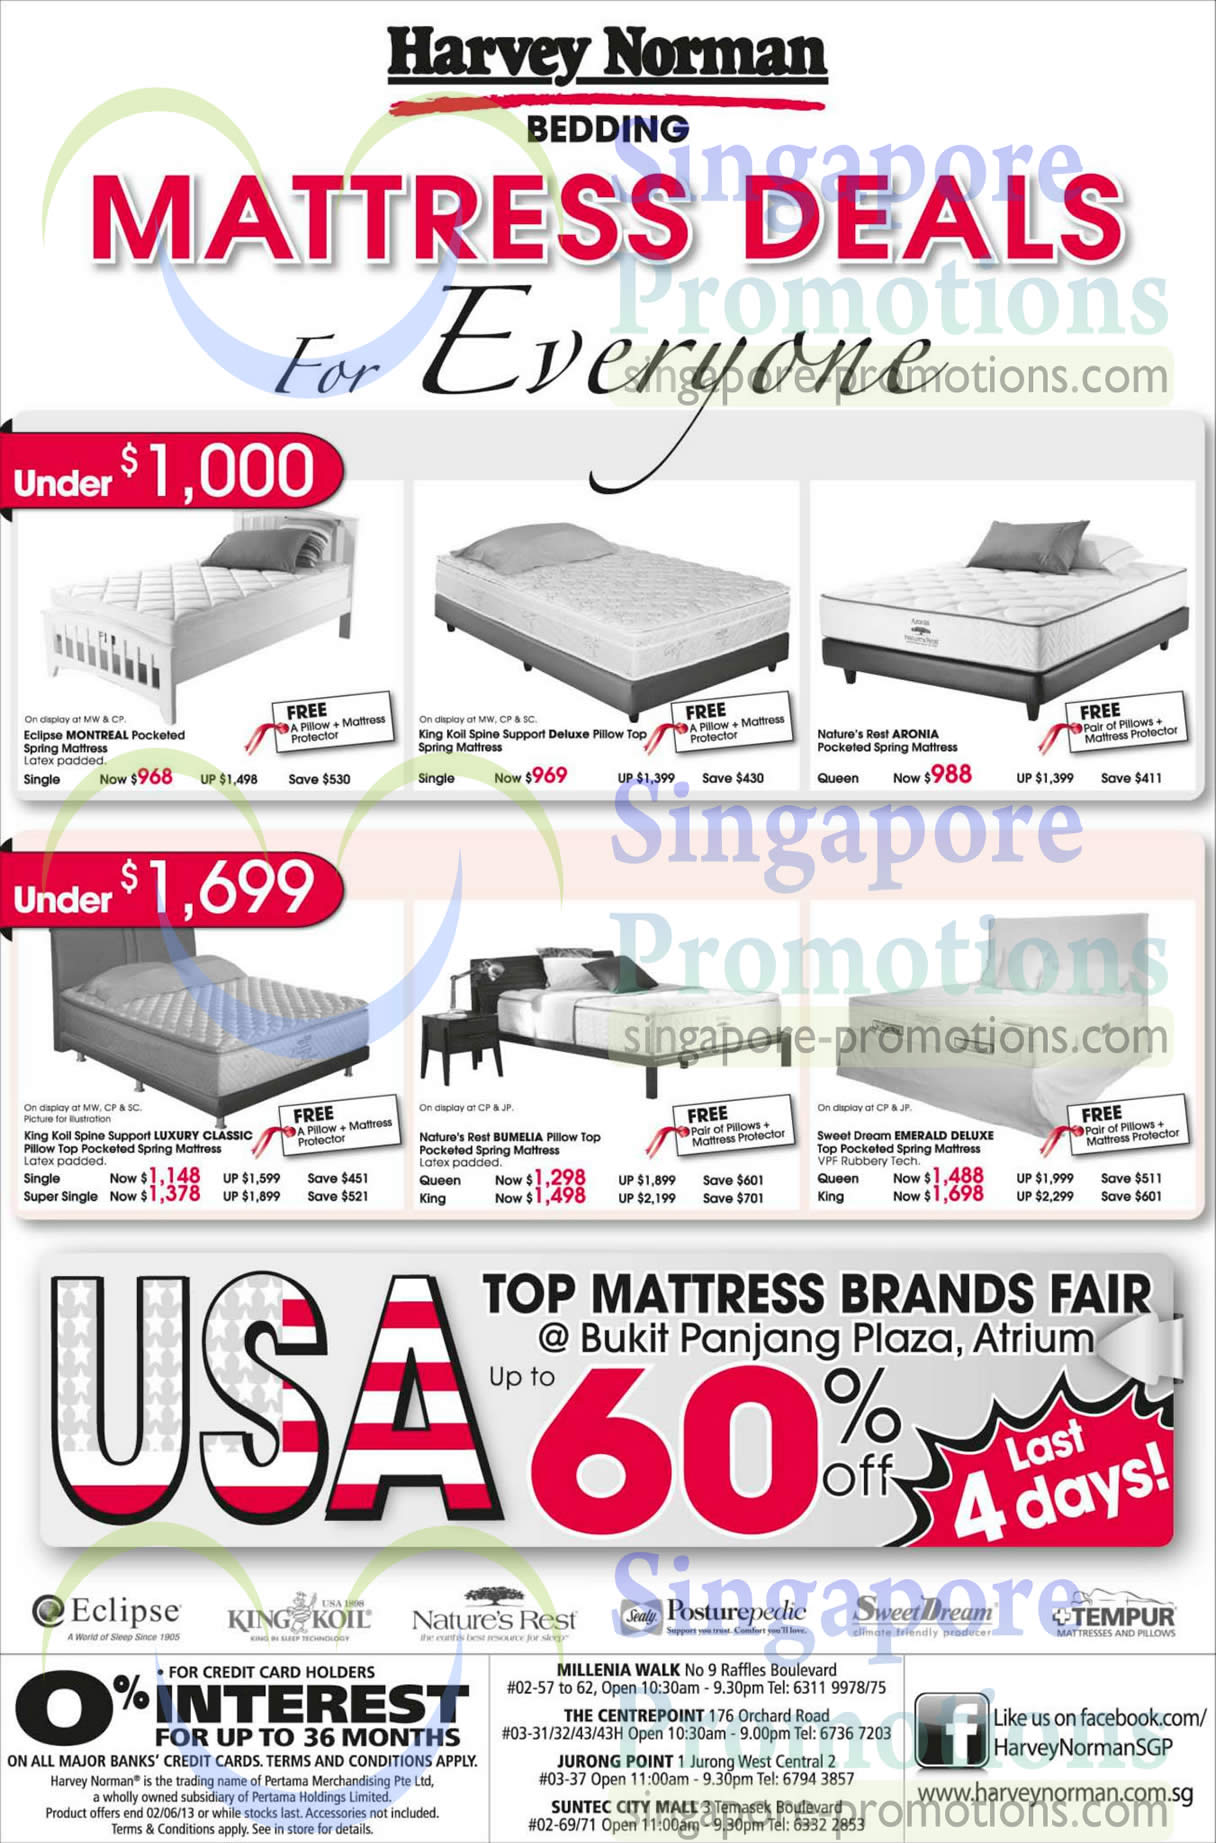 Eclipse Montreal Mattress, King Koil Spine Support Deluxe Mattress, Nature's Rest Aronia Mattress, King Koil Spine Support Luxury Classic Mattress, Nature's Rest Bumelia Mattress and Sweet Dream Emerald Deluxe Mattress